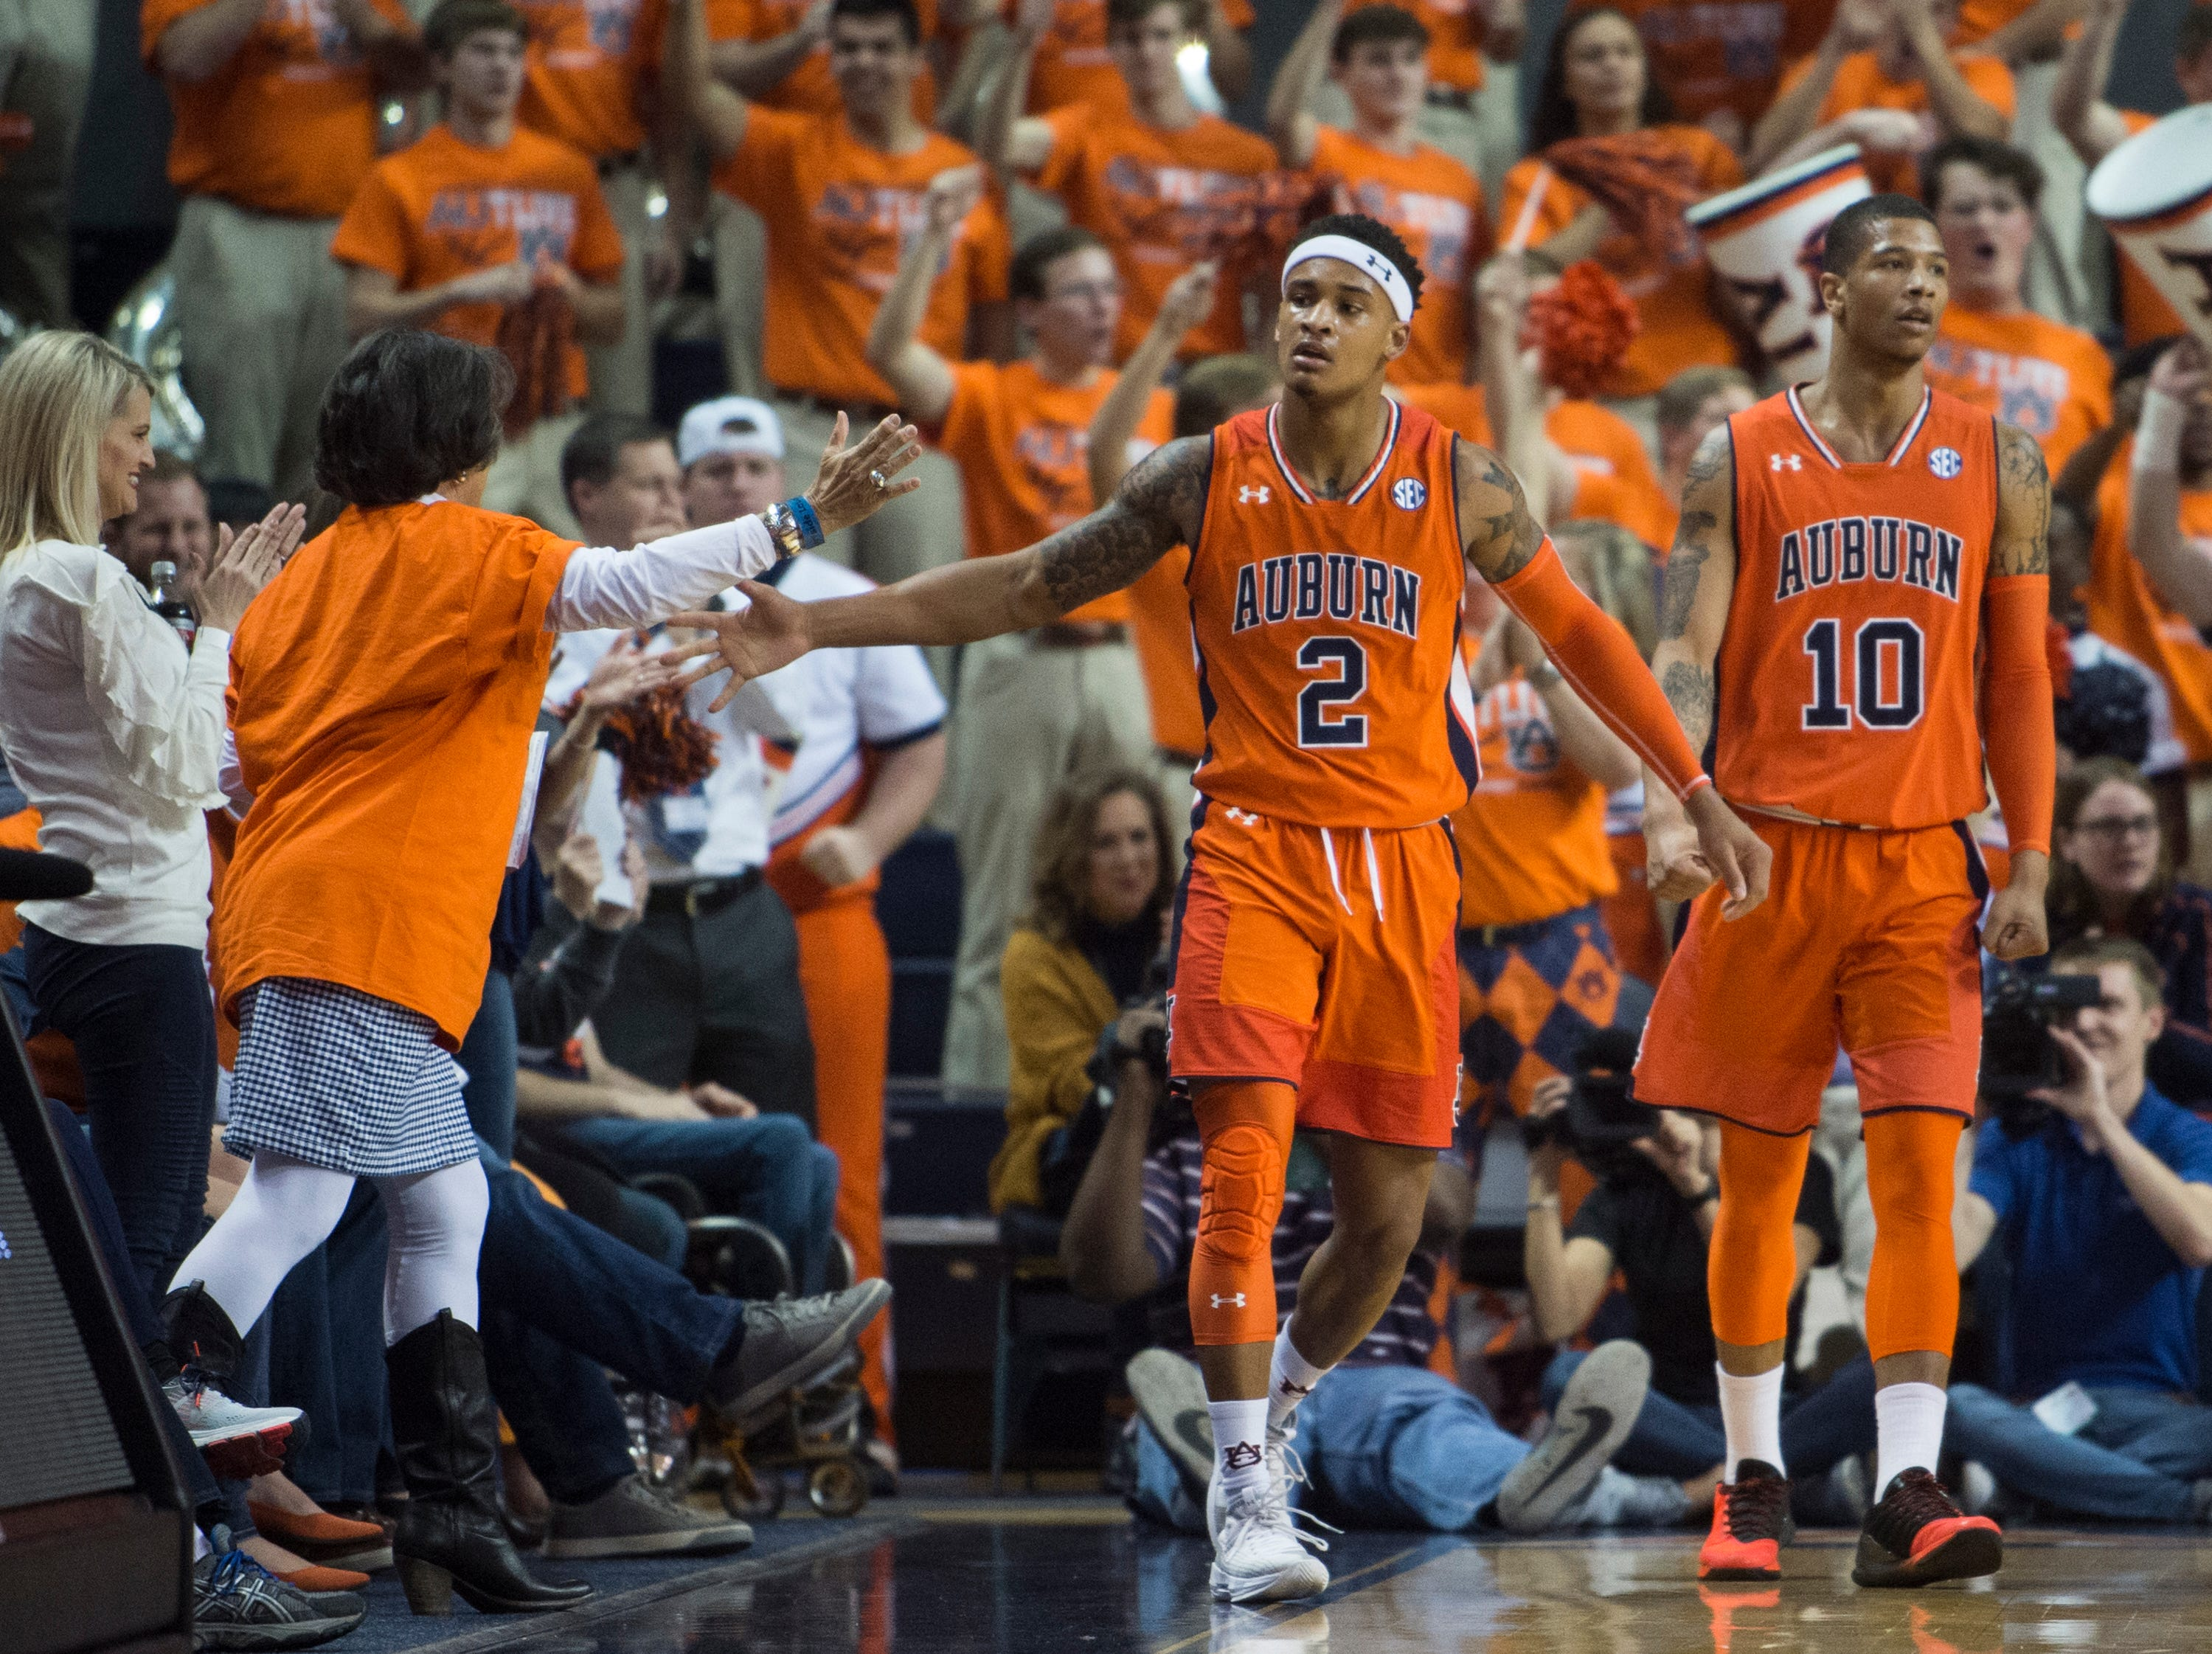 Auburn guard Bryce Brown (2) high fives a fan after making an and-one play at Auburn Arena in Auburn, Ala., on Saturday, Feb. 2, 2019. Auburn leads Alabama 48-28 at halftime.